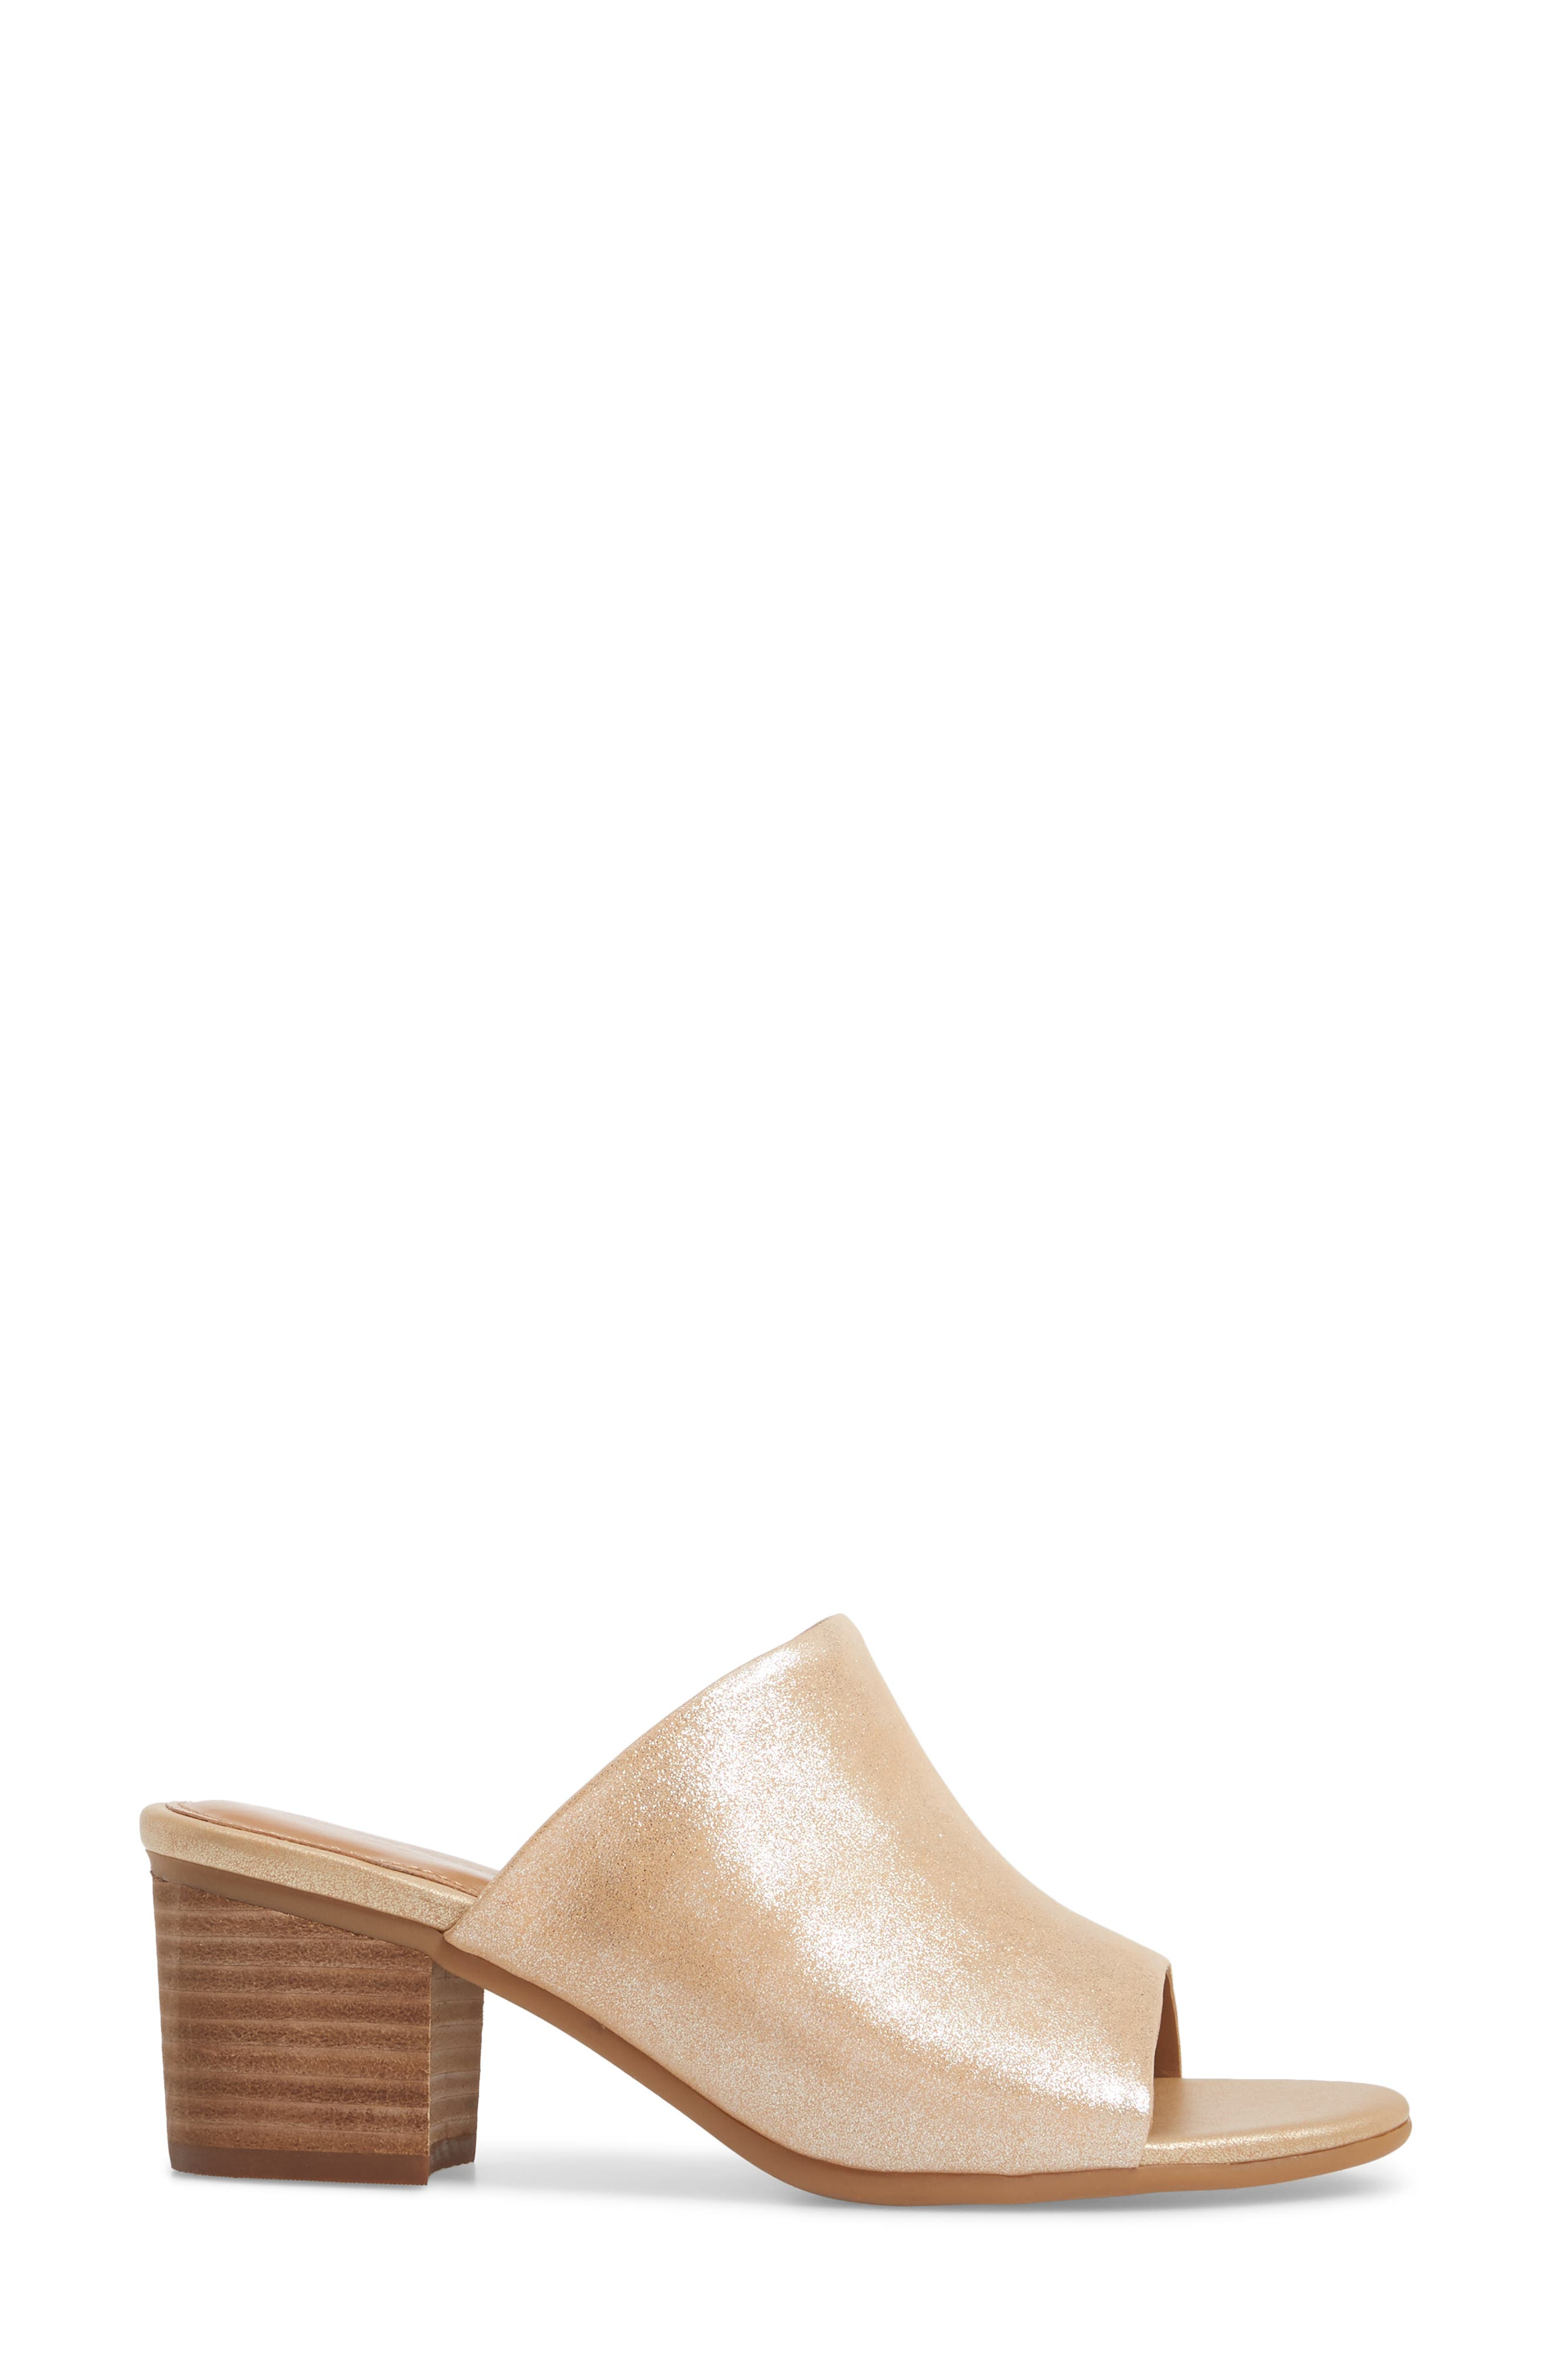 Anabella Sandal,                             Alternate thumbnail 3, color,                             Natural Leather